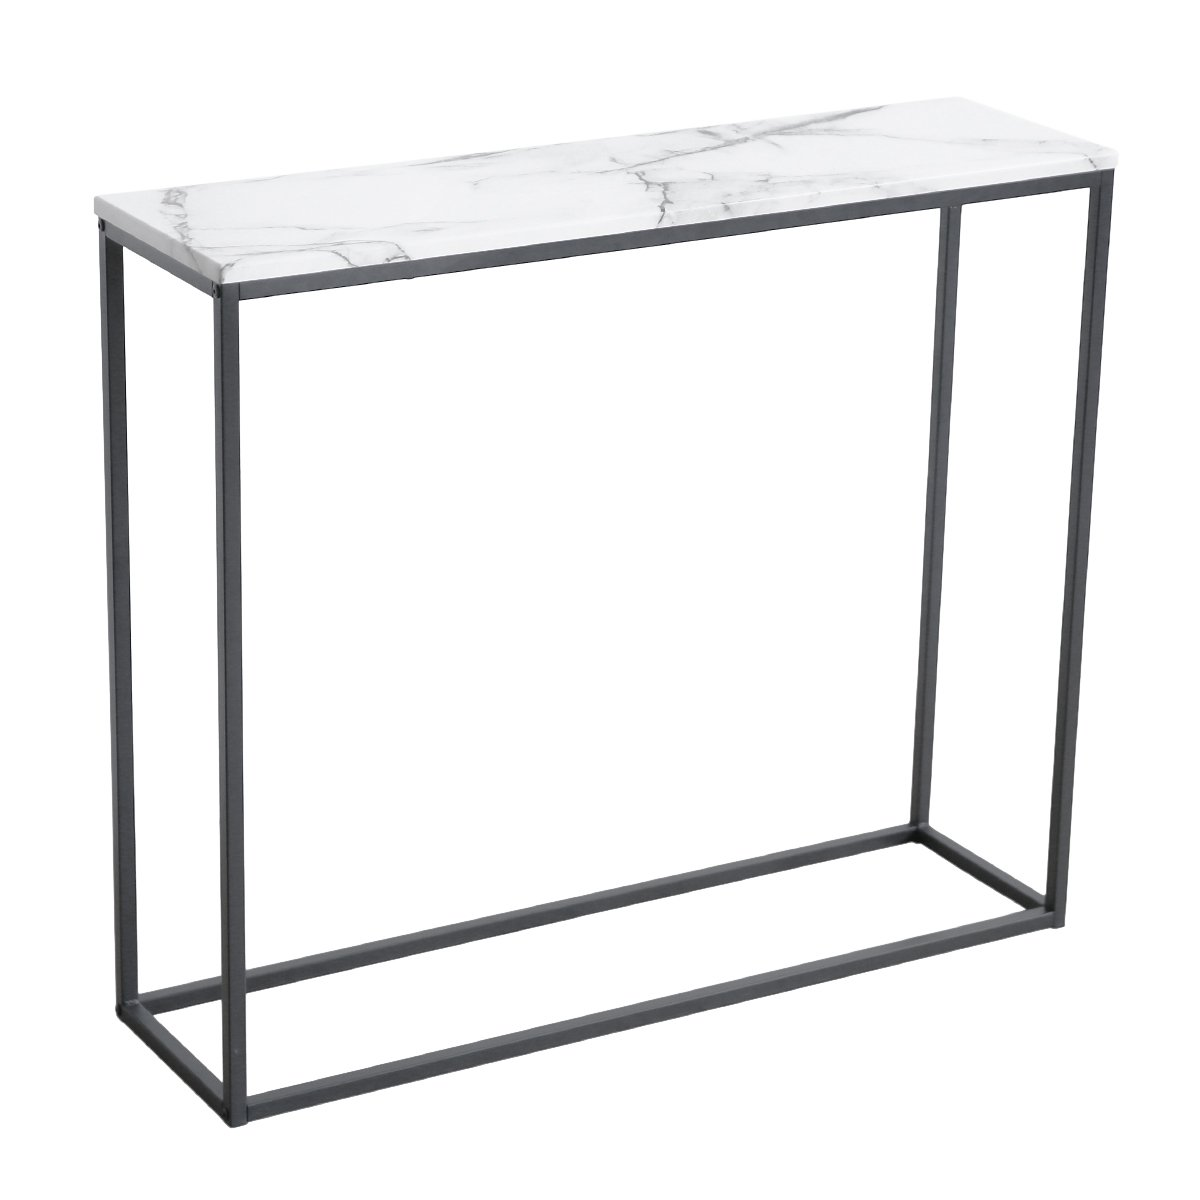 roomfitters sofa console table marble print top metal hooper accent frame white narrow foyer hall kitchen dining traditional cherry furniture unique bedside tables entryway